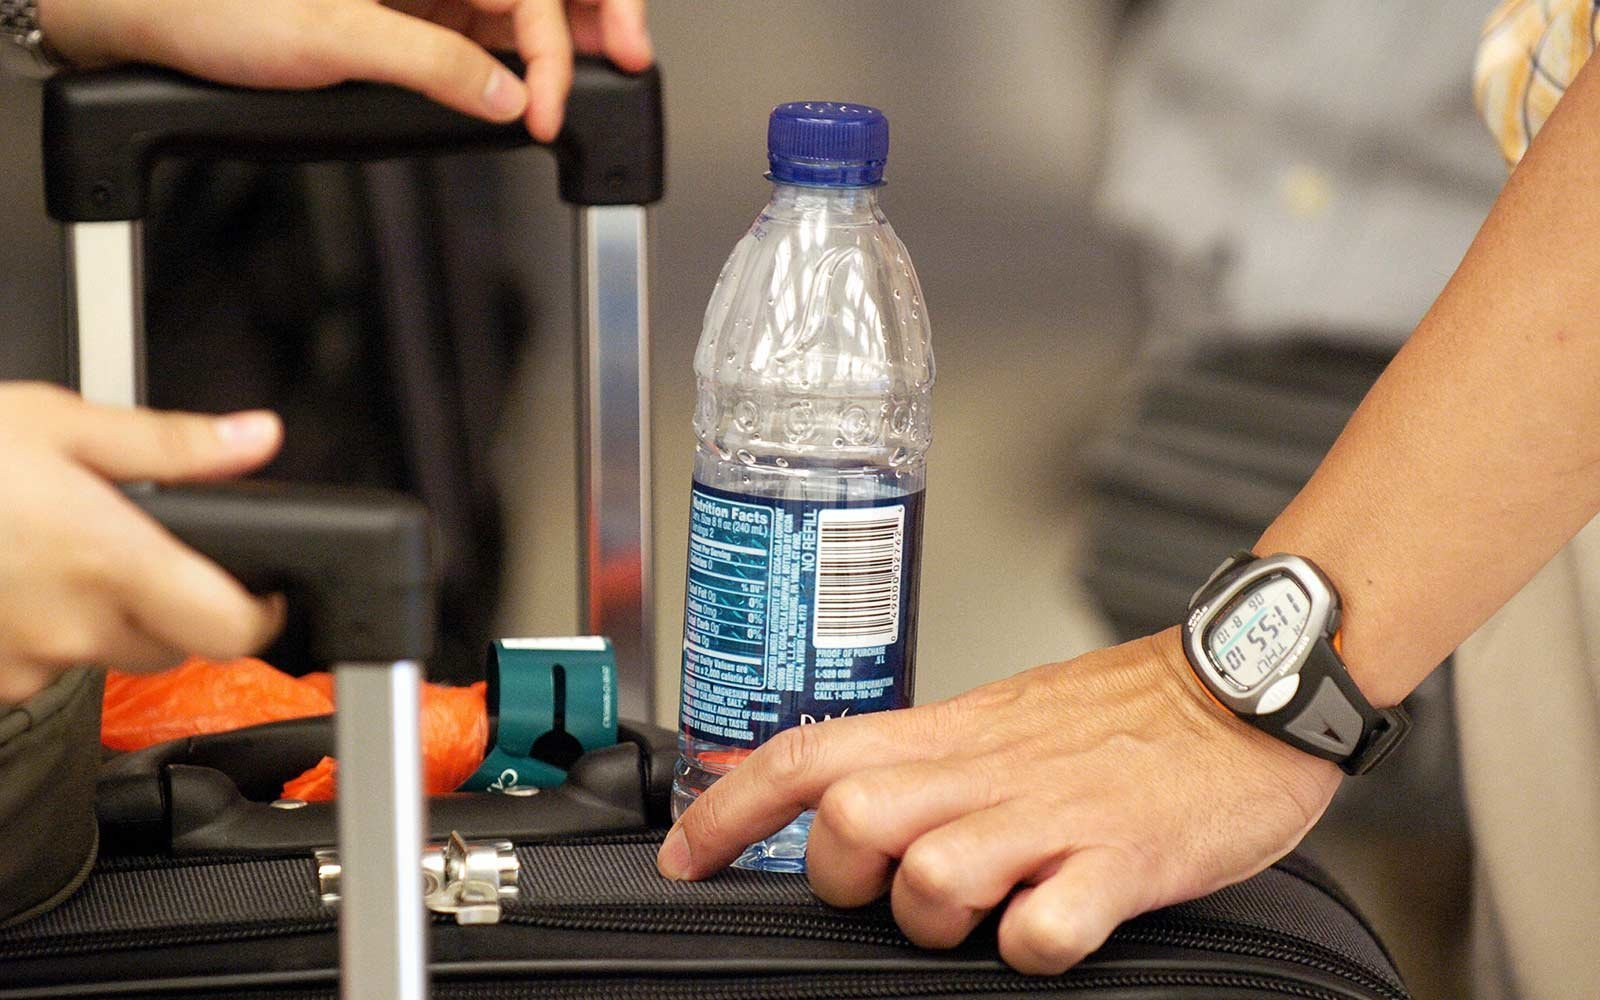 This Travel Hack Will Let You Transport Your Favorite Beverage Through Security (Video)